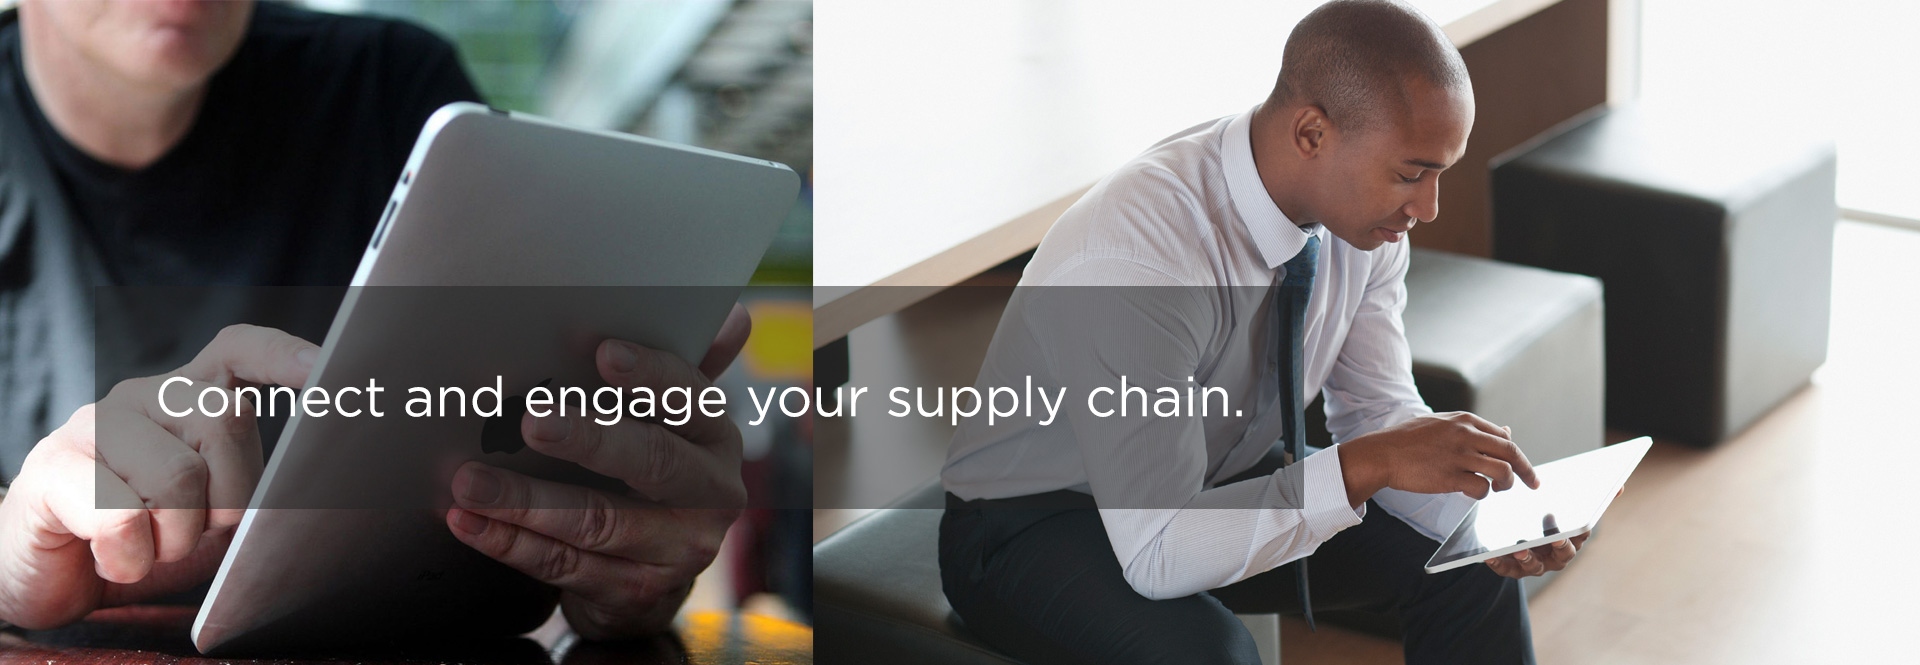 connect_supply_chain-1